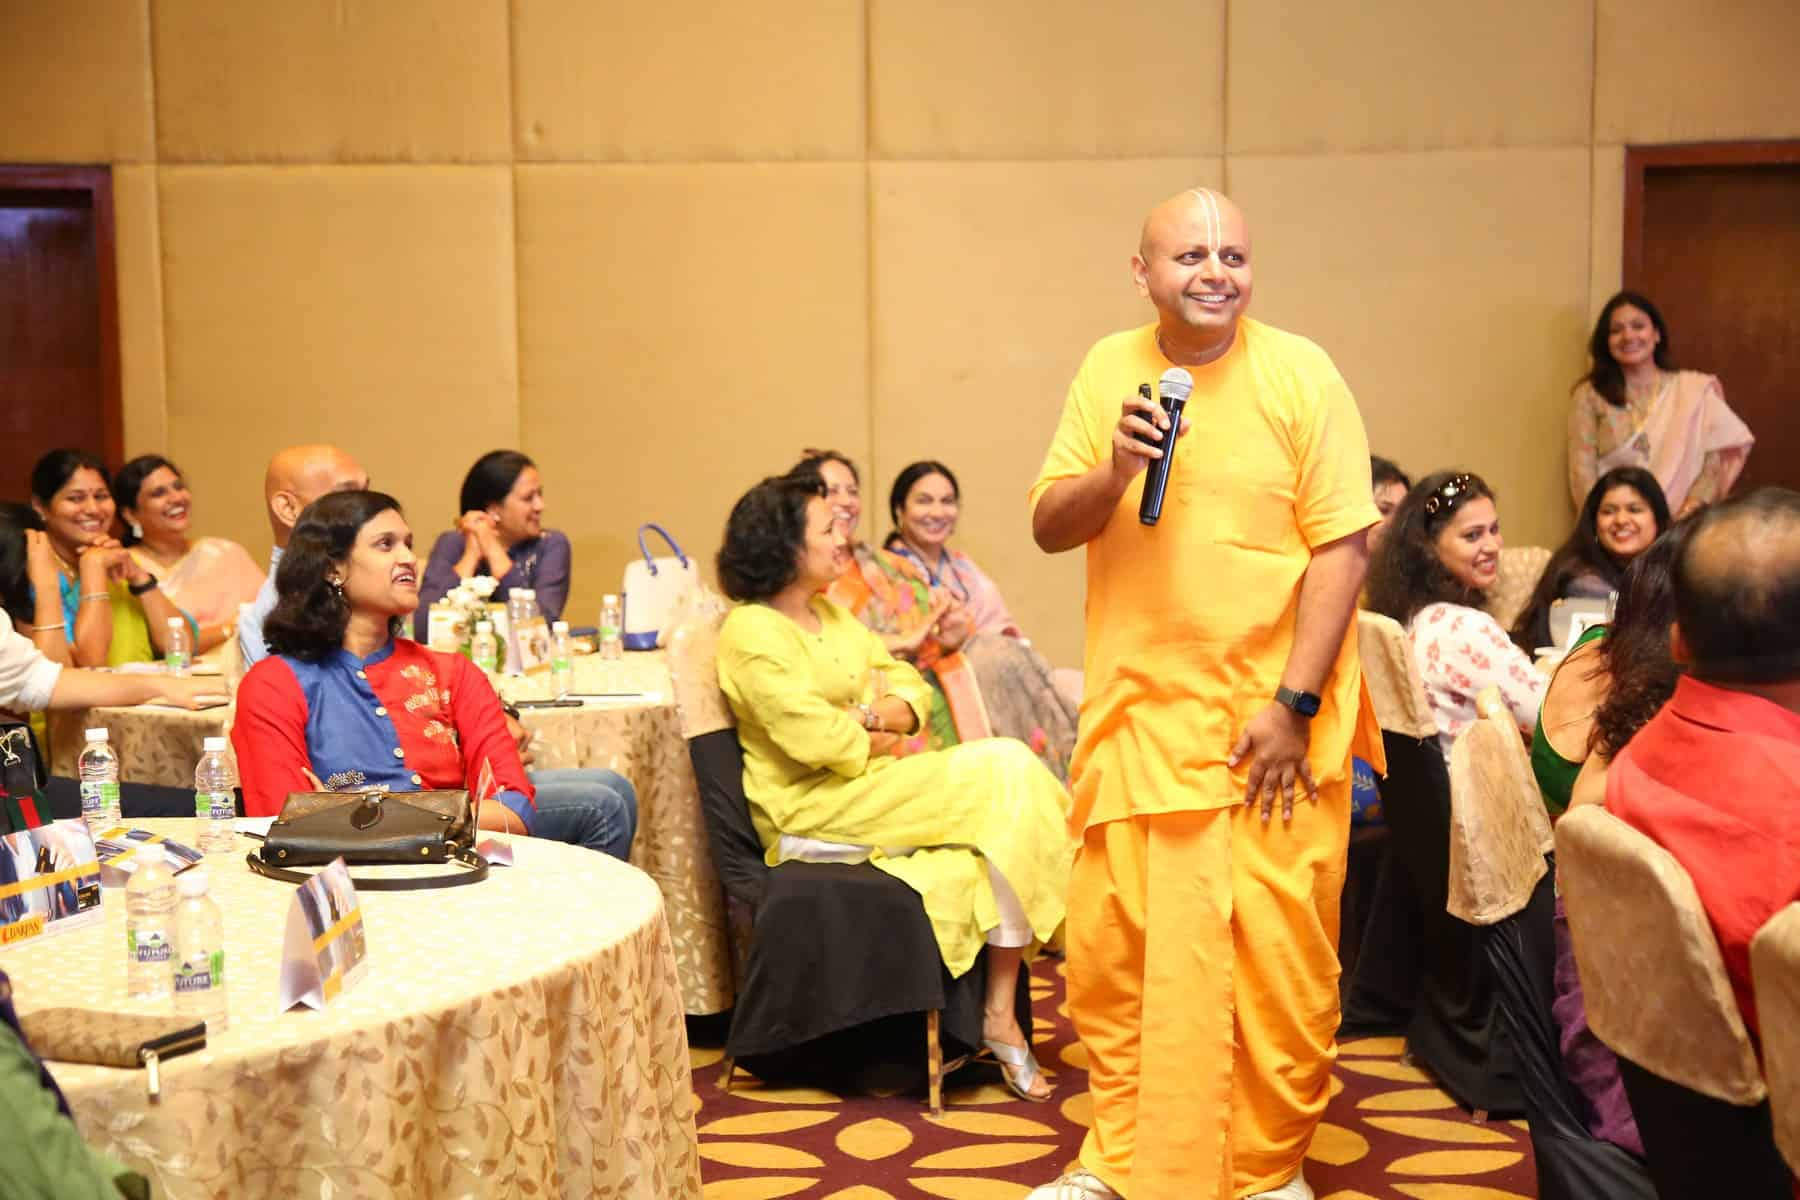 Make Up when applied will make a person feel and look good: Monk